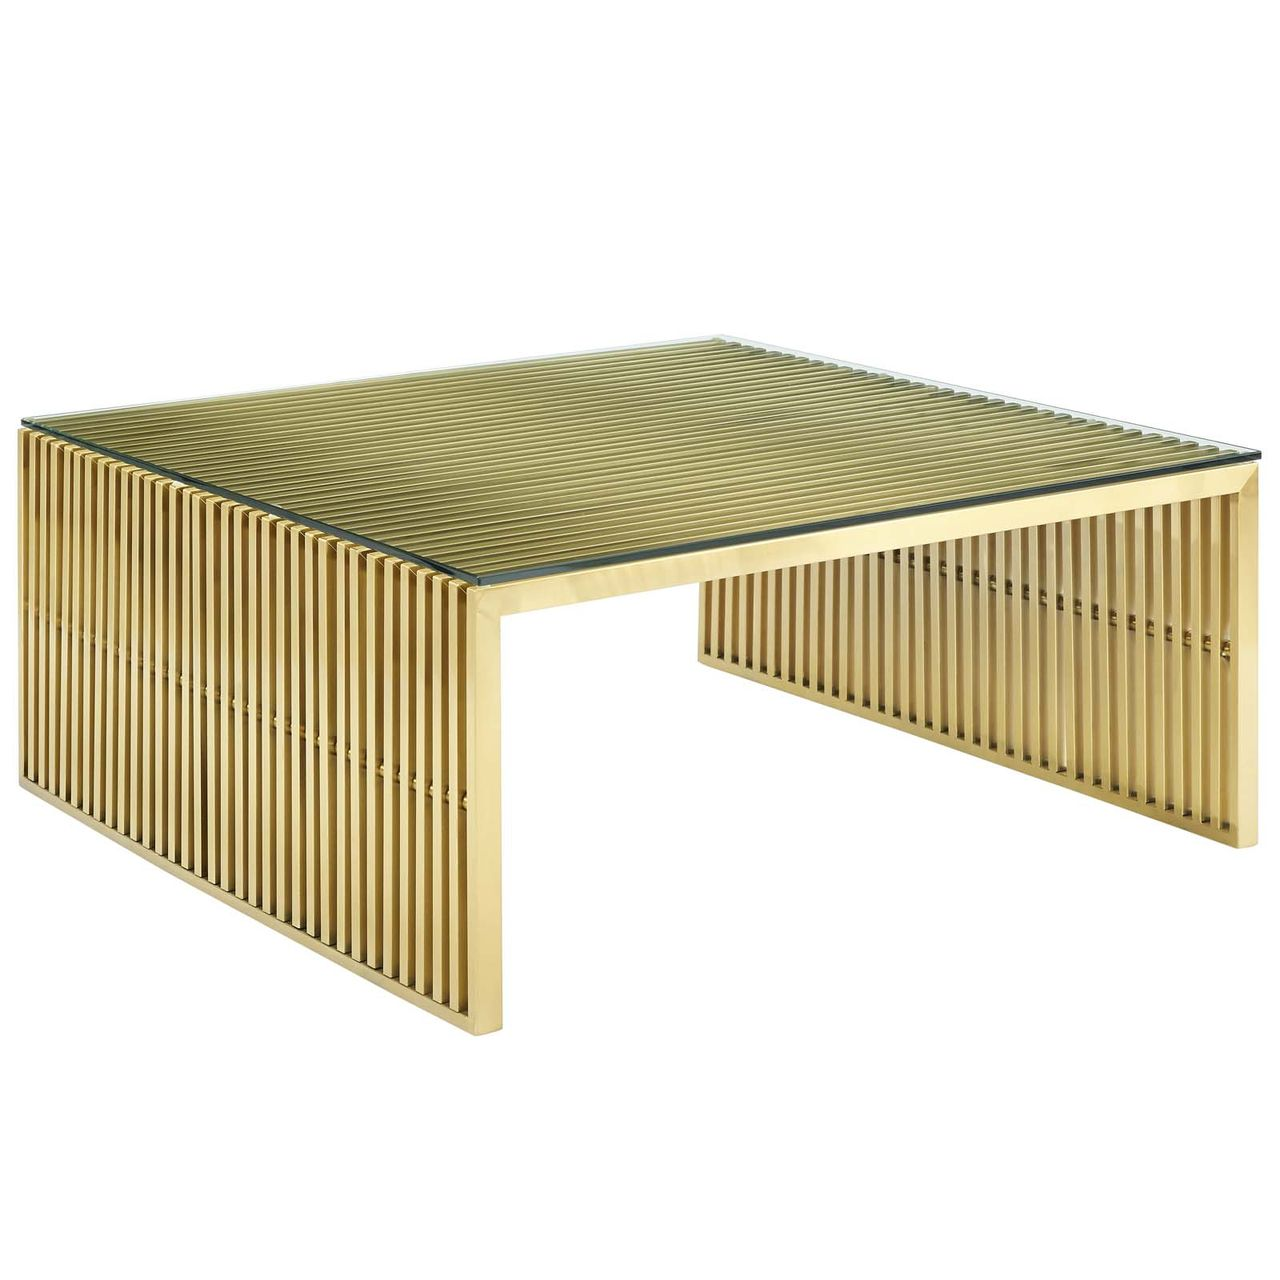 Modway Gridiron Stainless Steel Coffee Table - Gold